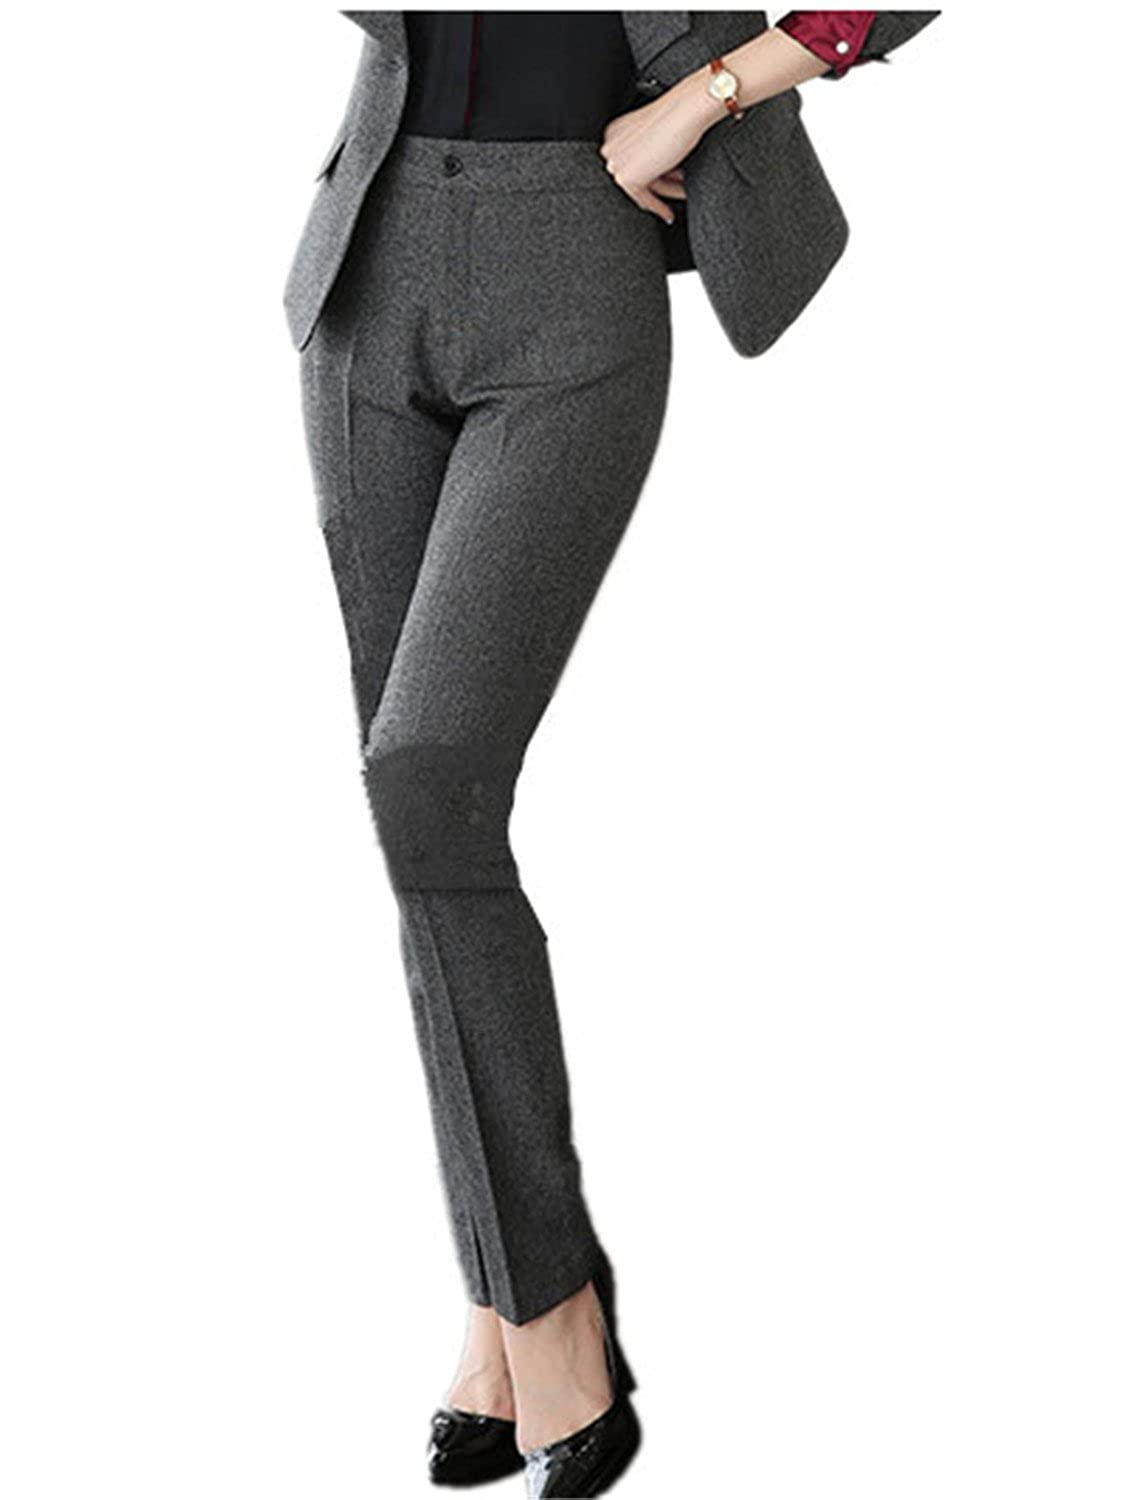 b5f605e5ce8 Reedbler Cosy Fashion Full length professional business Formal pants women  trousers girls slim female work wear Office Lady career plus size clothing  Dark ...